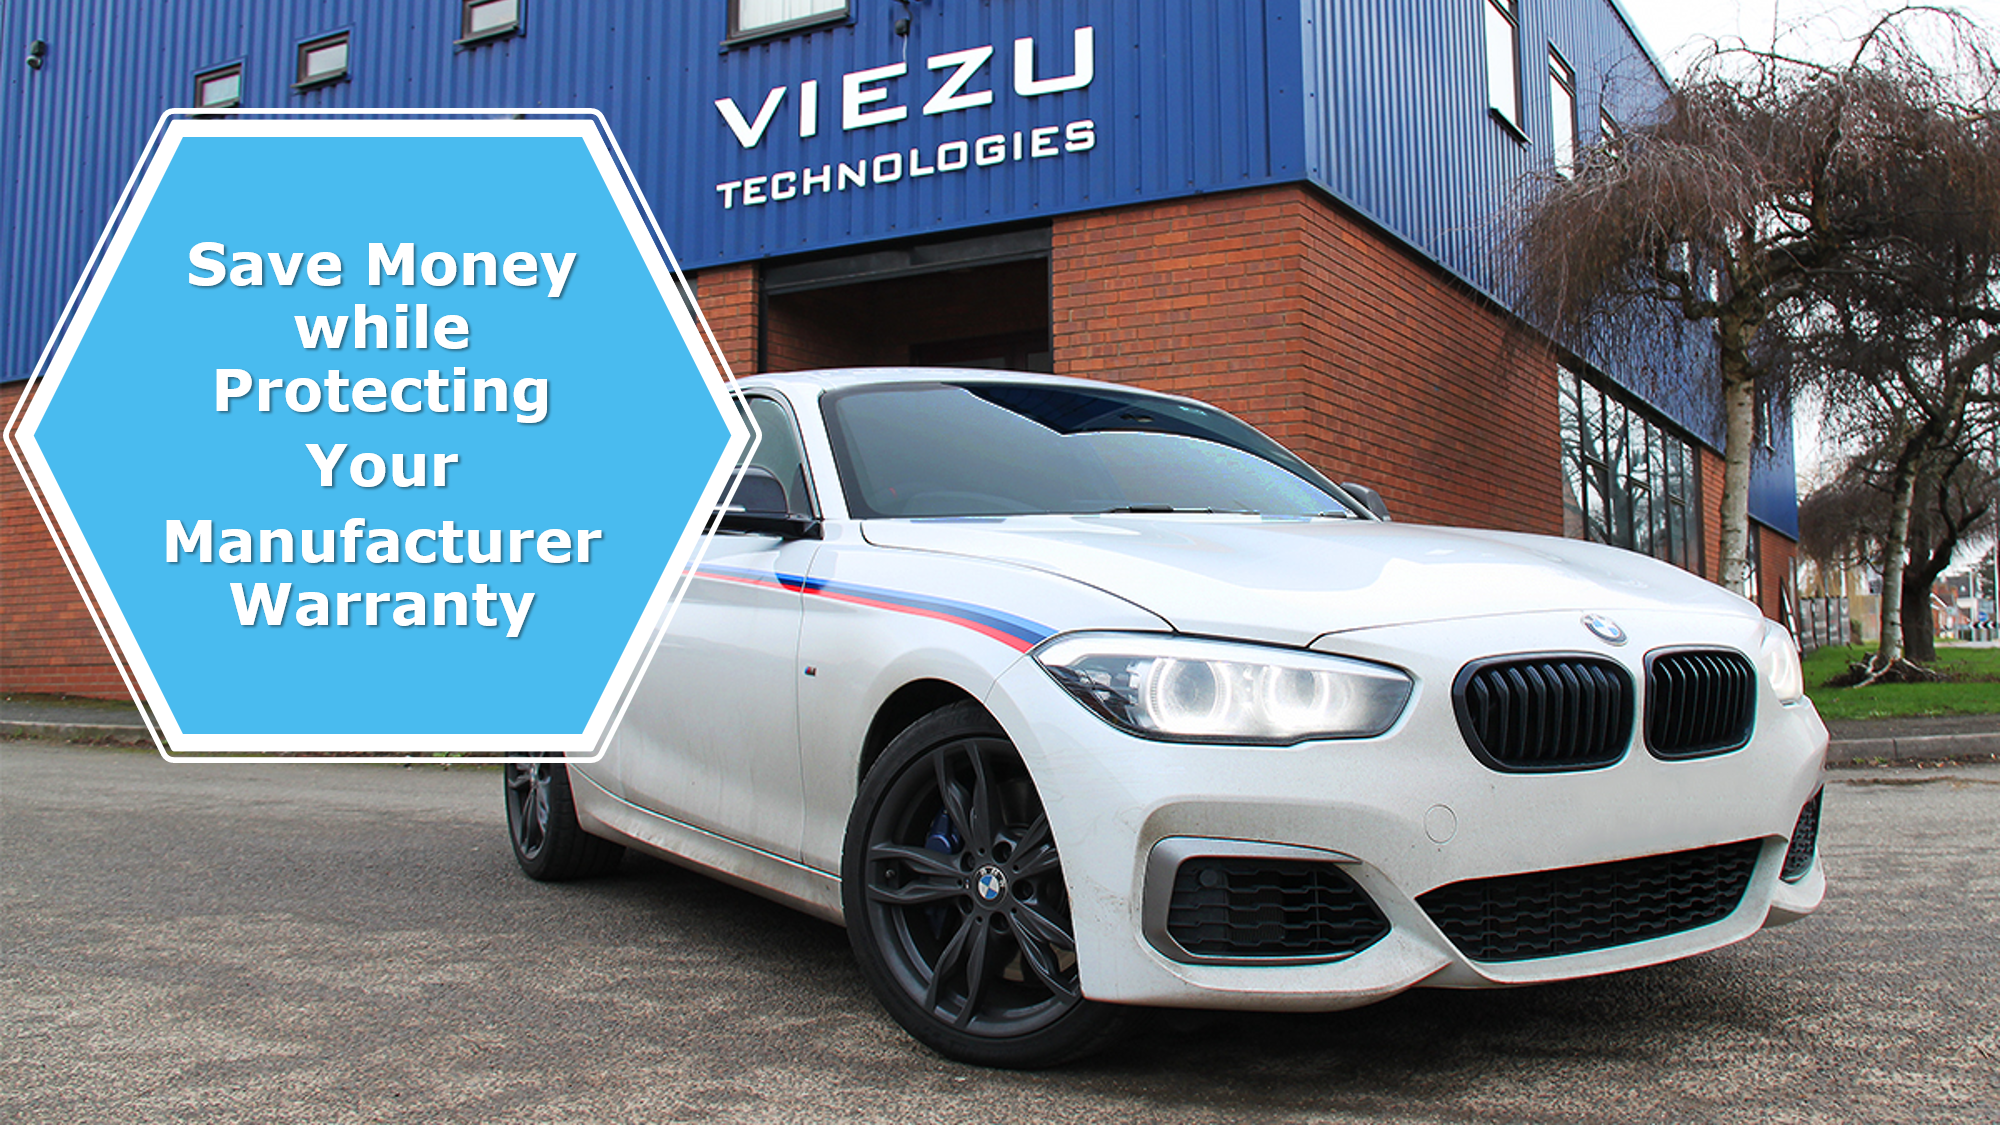 save money and protect your manufacturer warranty